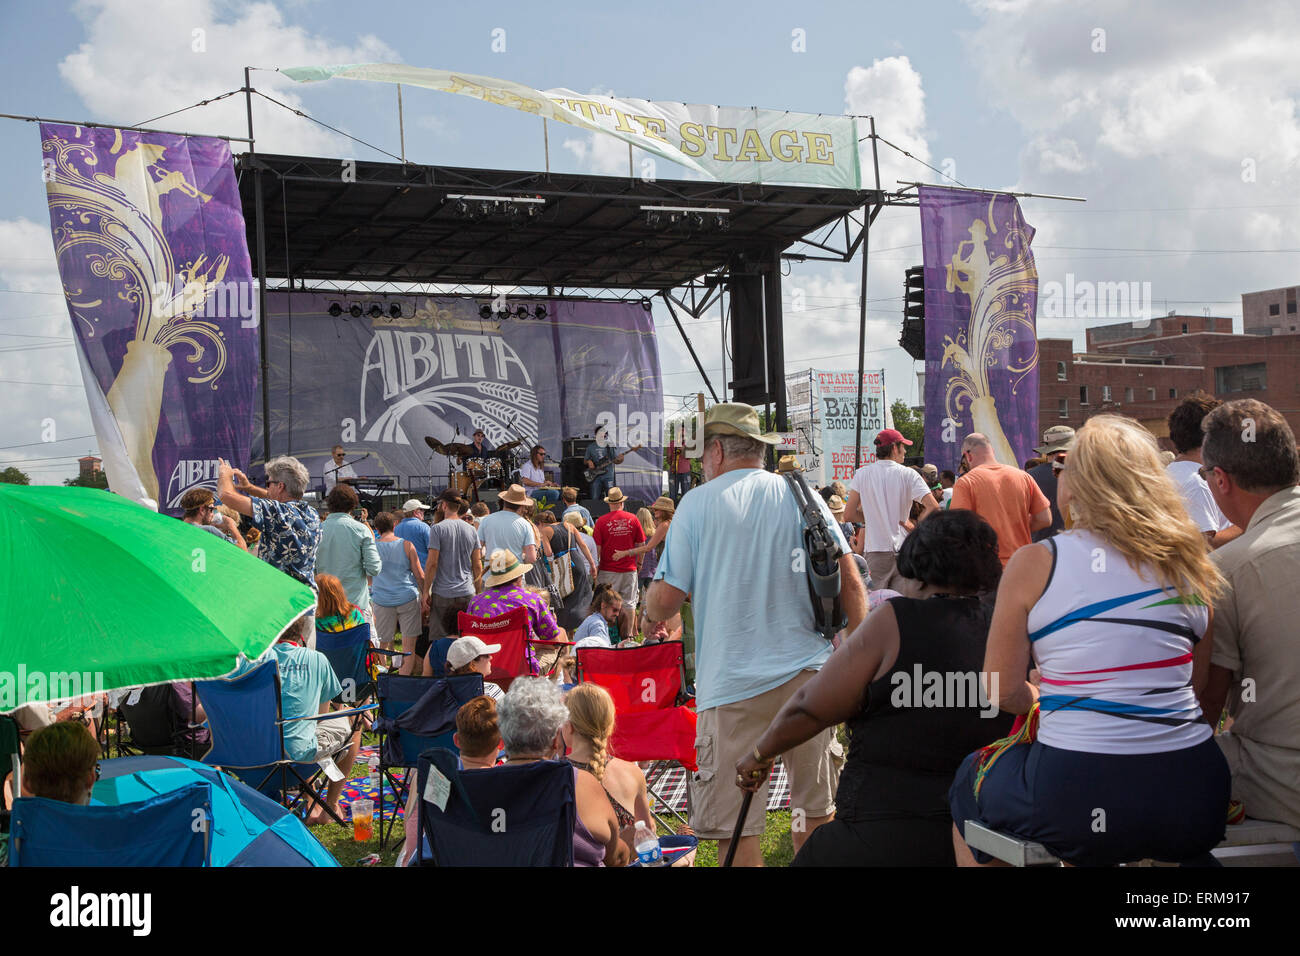 New Orleans, Louisiana - The Mid-City Bayou Bougaloo, an annual neighborhood music and arts festival. - Stock Image